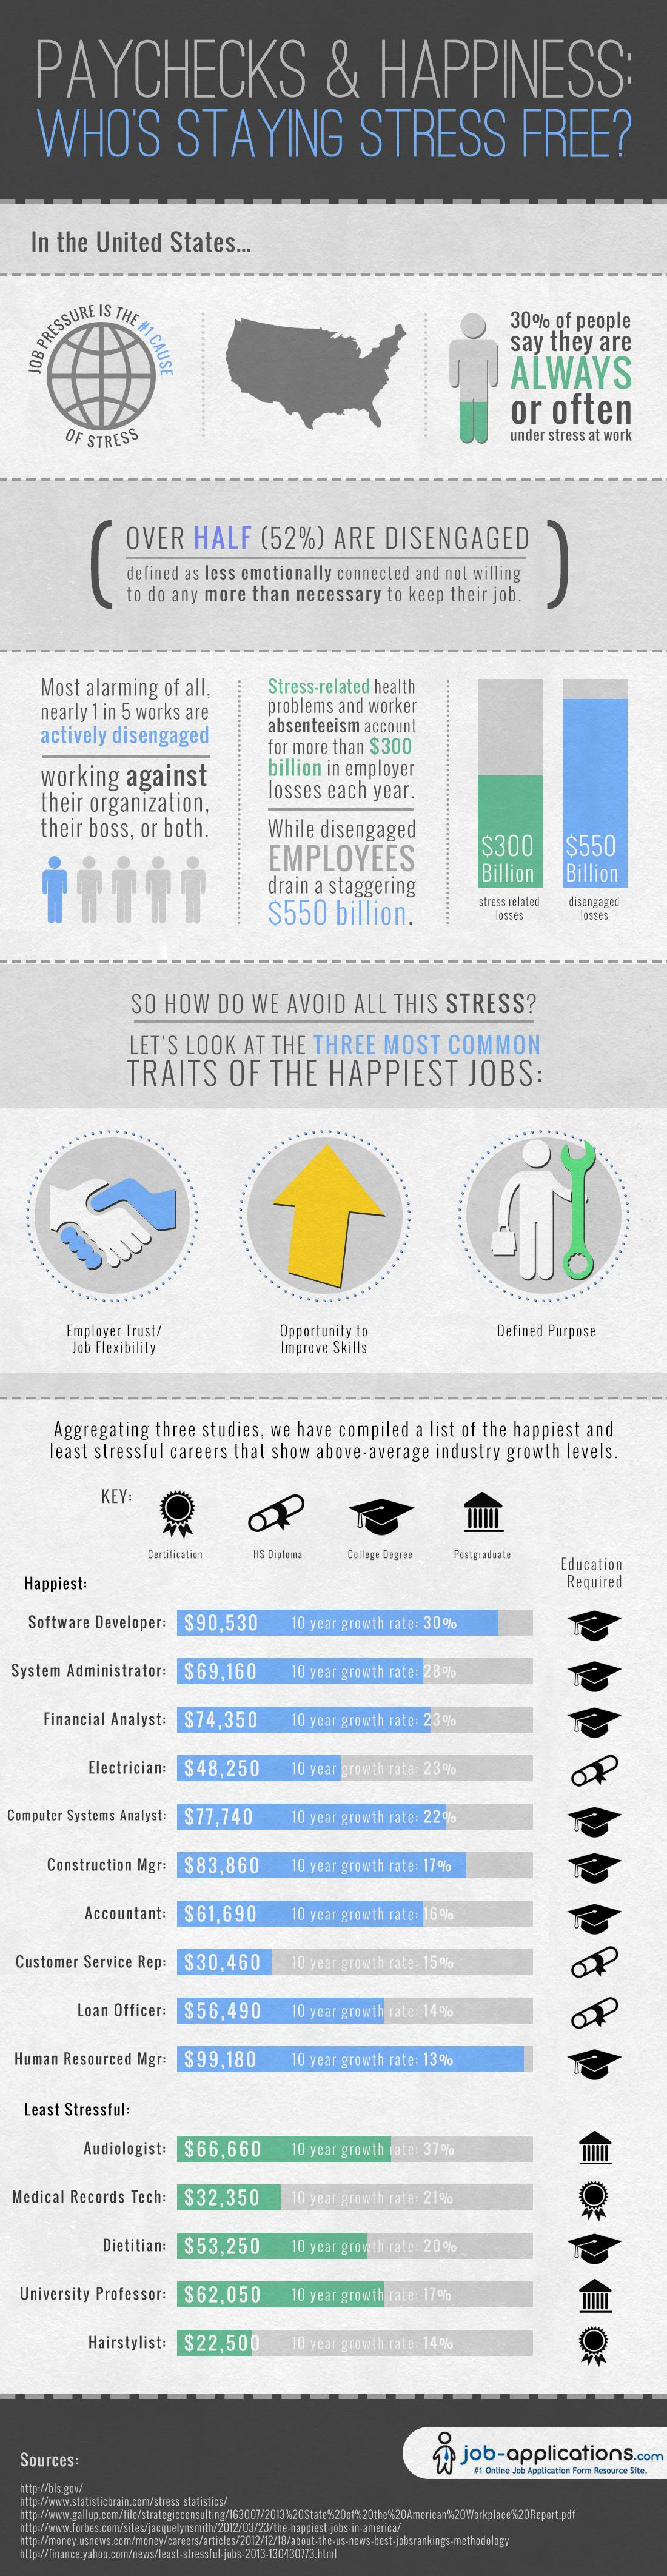 Paychecks & Happiness Who's Staying Stress Free (Infographic)